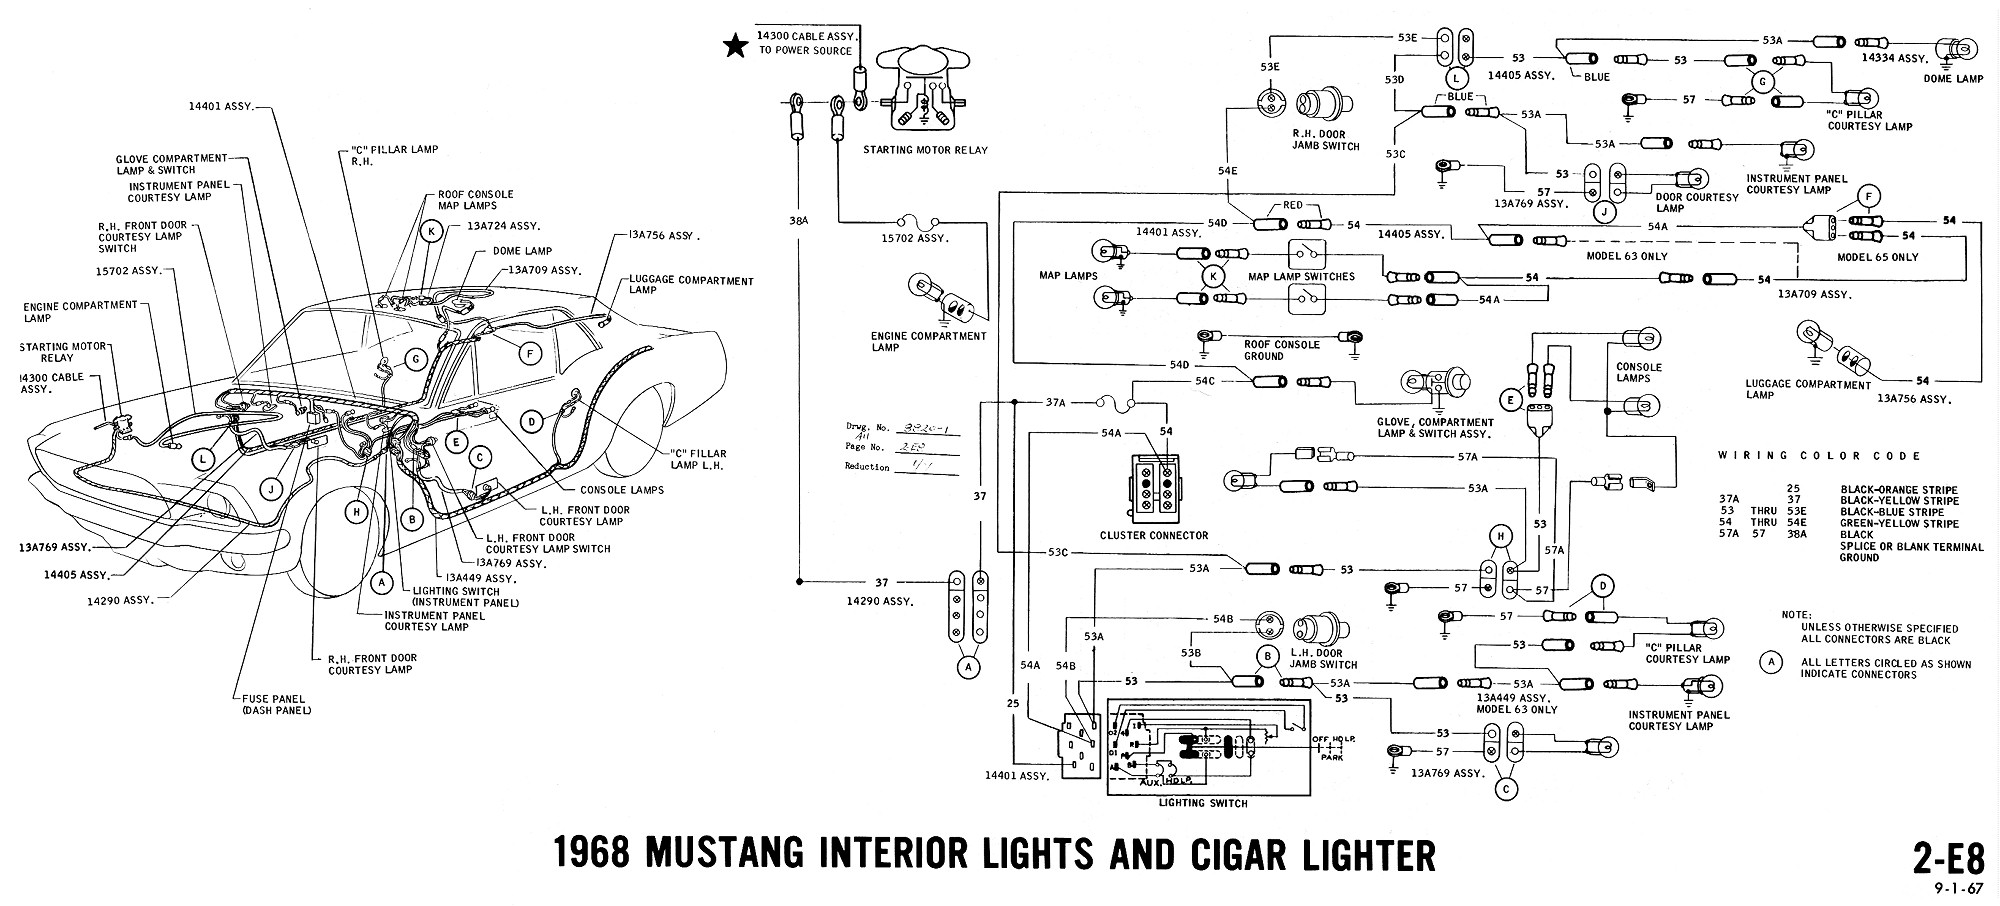 1968 mustang wiring diagrams and vacuum schematics freestyle vacuum diagram